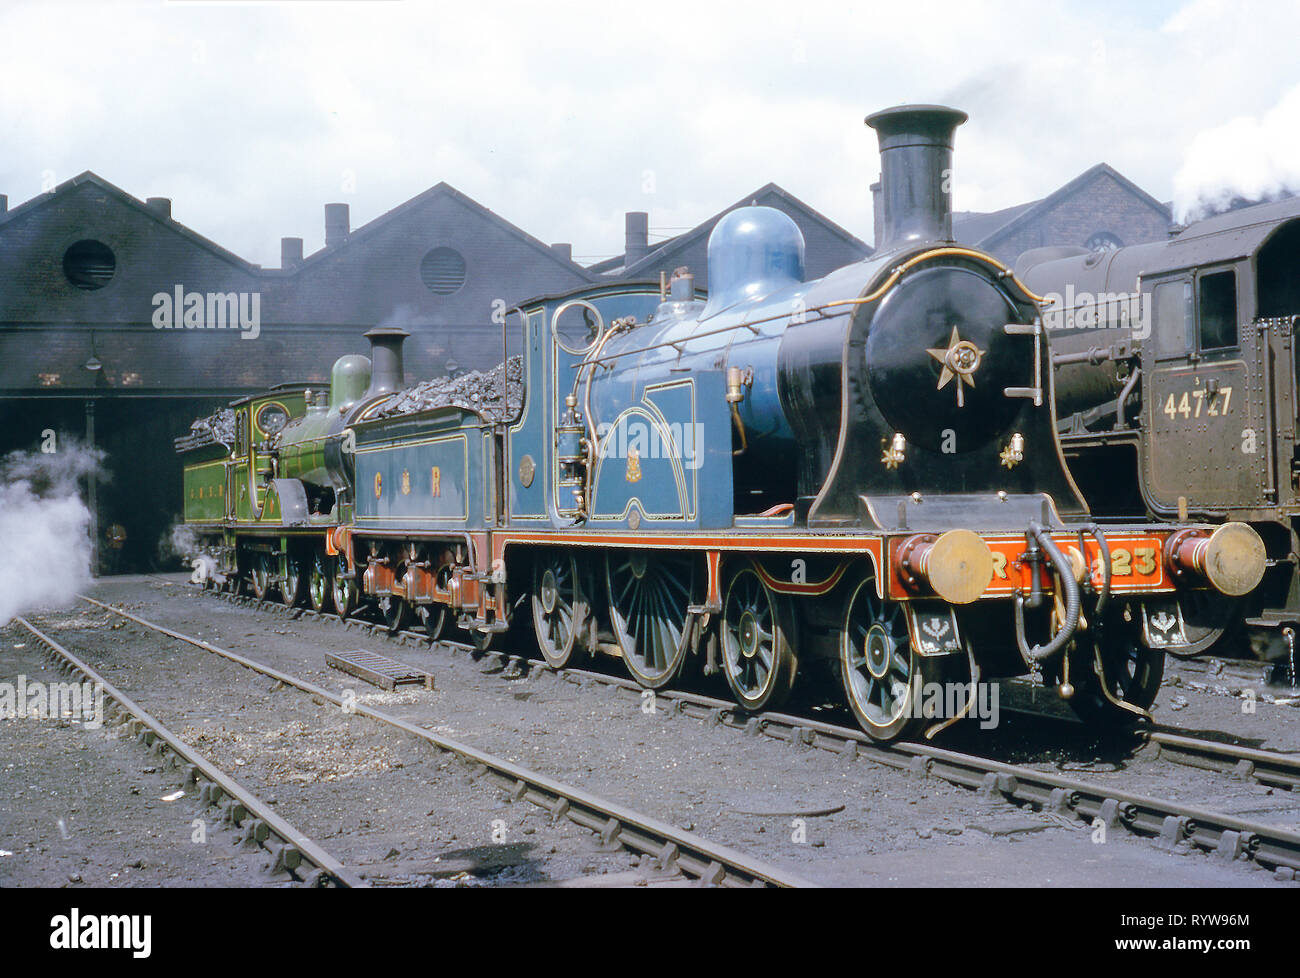 Great North of Scotland Railway Loco No 49 and Caledonian Railway Loco No 123 on Kingmoor Shed, Carlisle England on 15th June 1964 - Stock Image